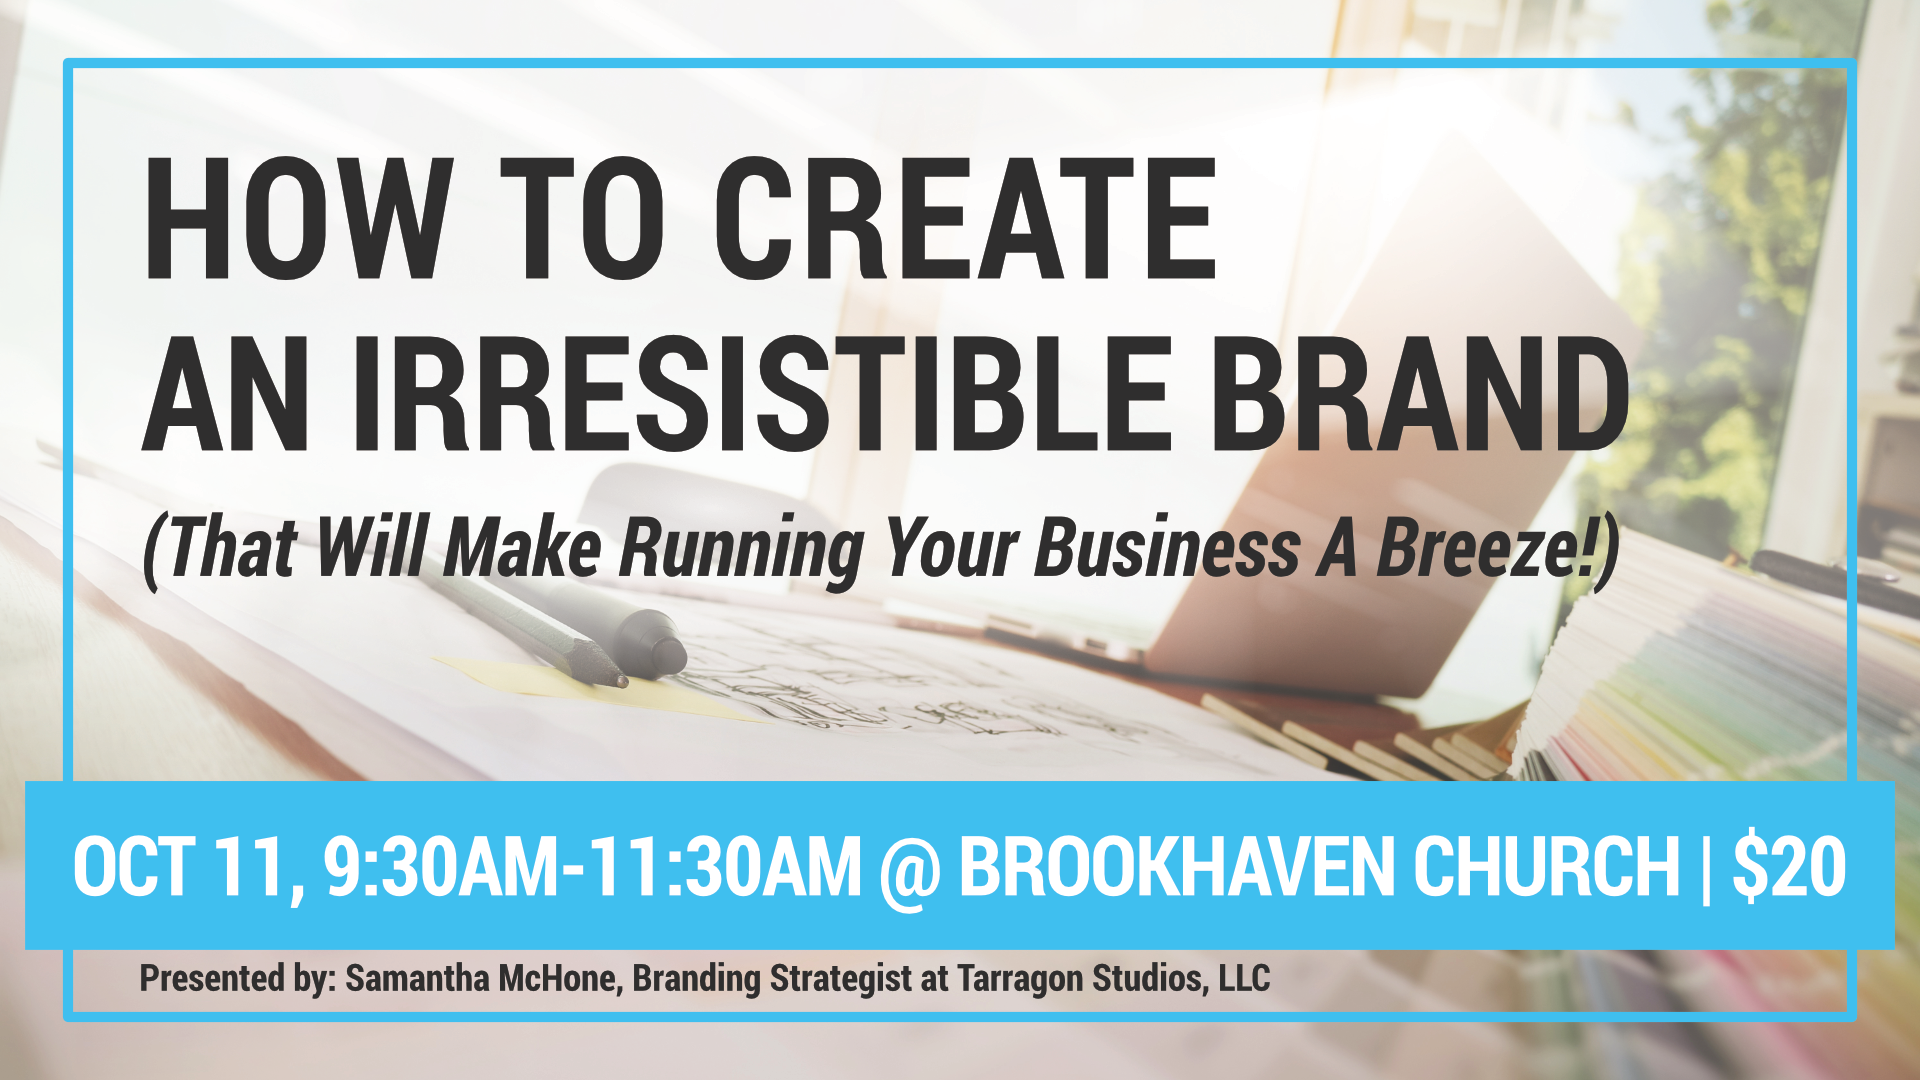 Brand Strategy Event with Samantha McHone of Tarragon Studios